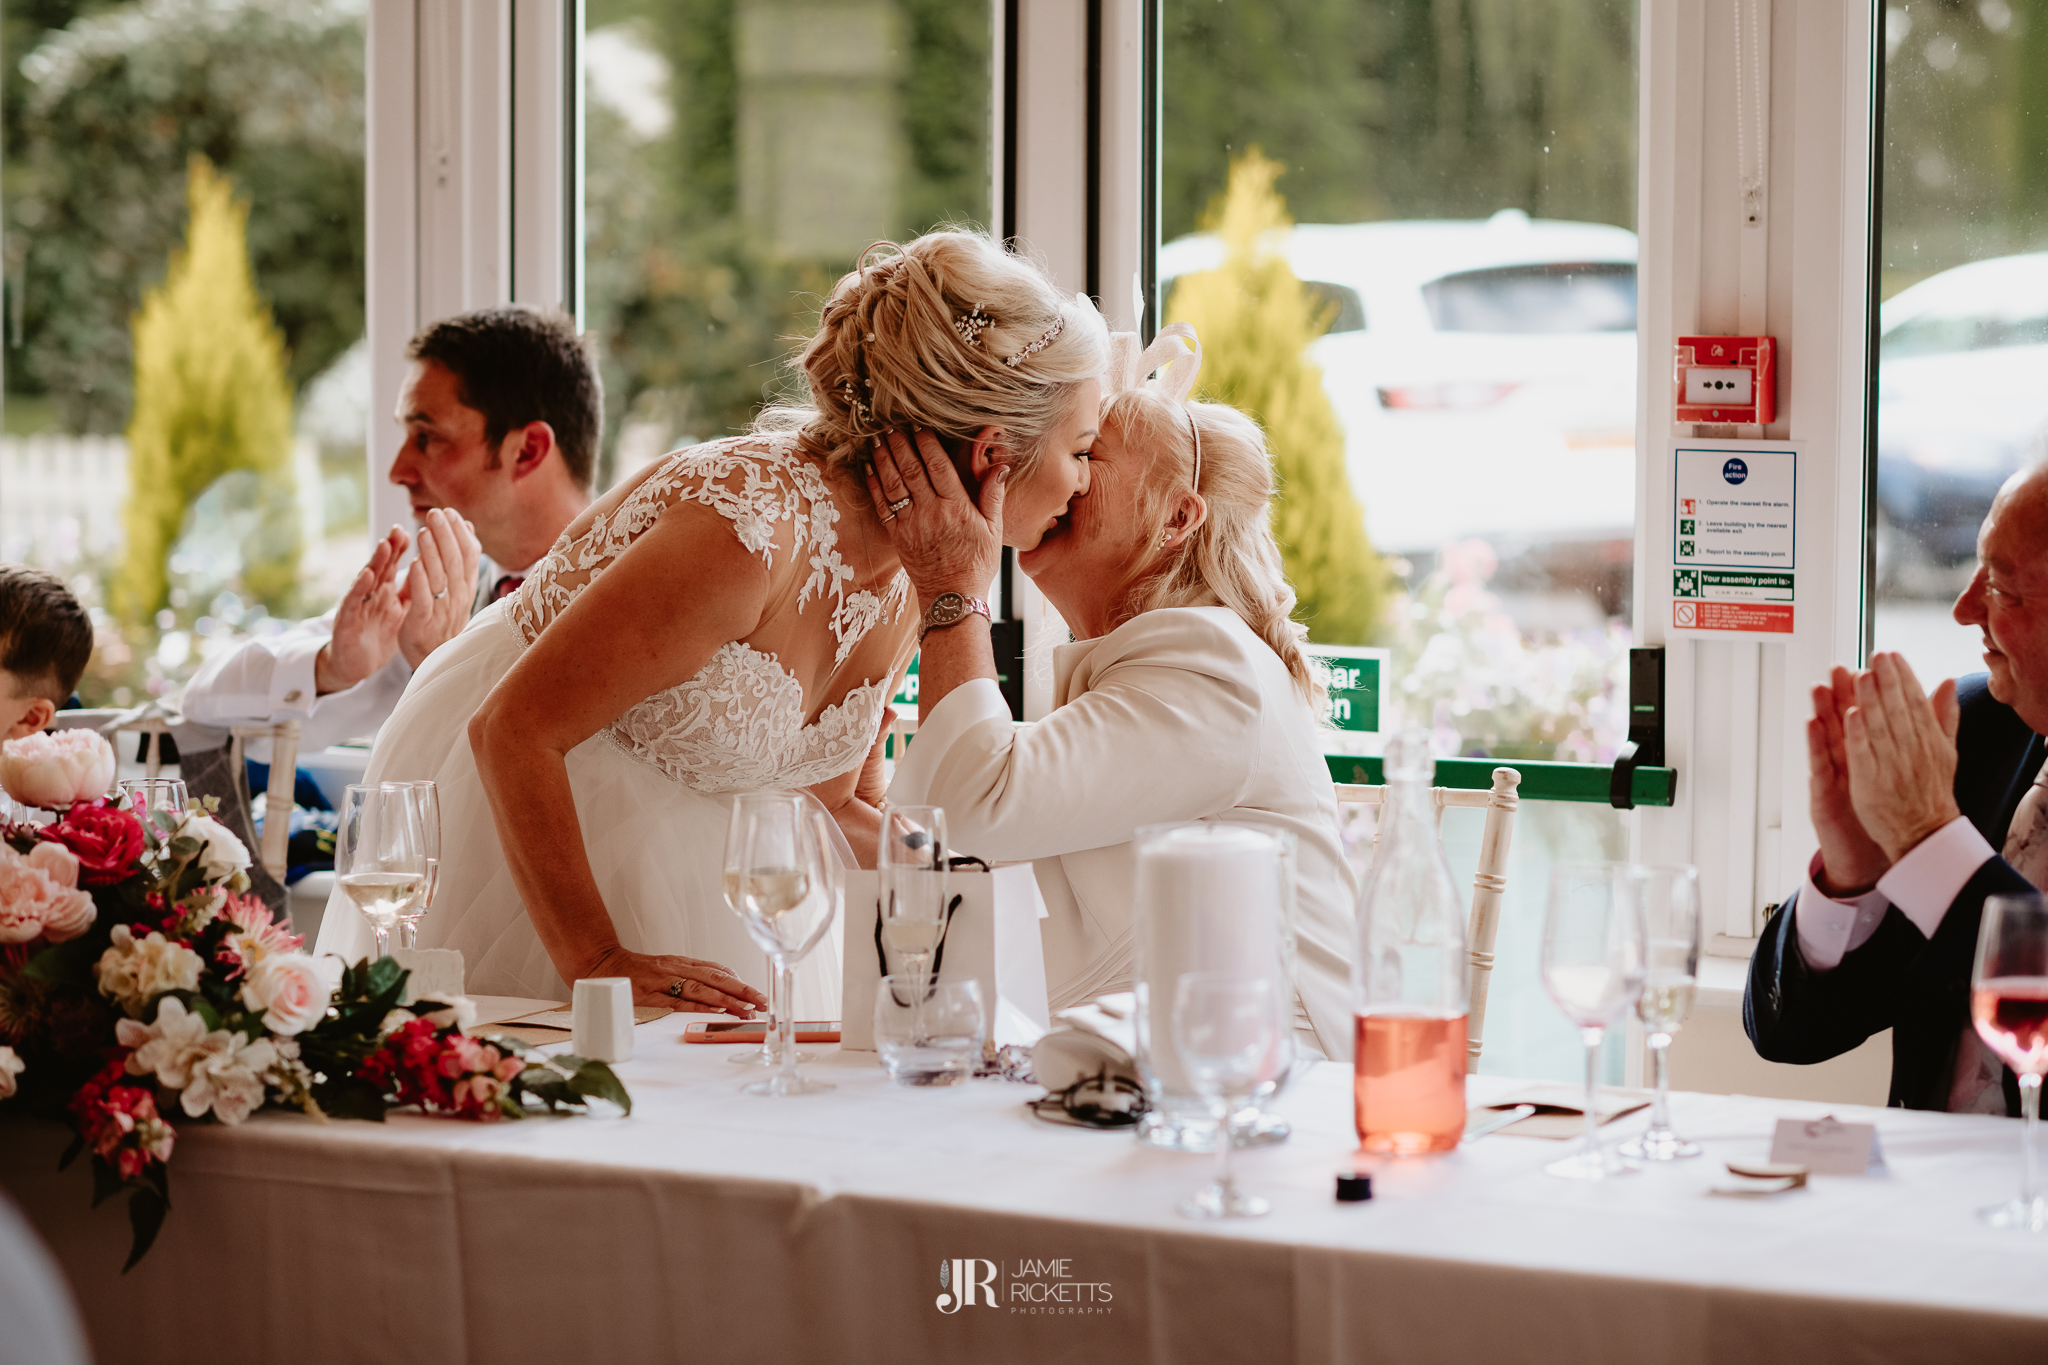 Wroxeter-Hotel-Wedding-Photography-In-Shropshire-By-Shropshire-Wedding-Photographer-Jamie-Ricketts-183.JPG